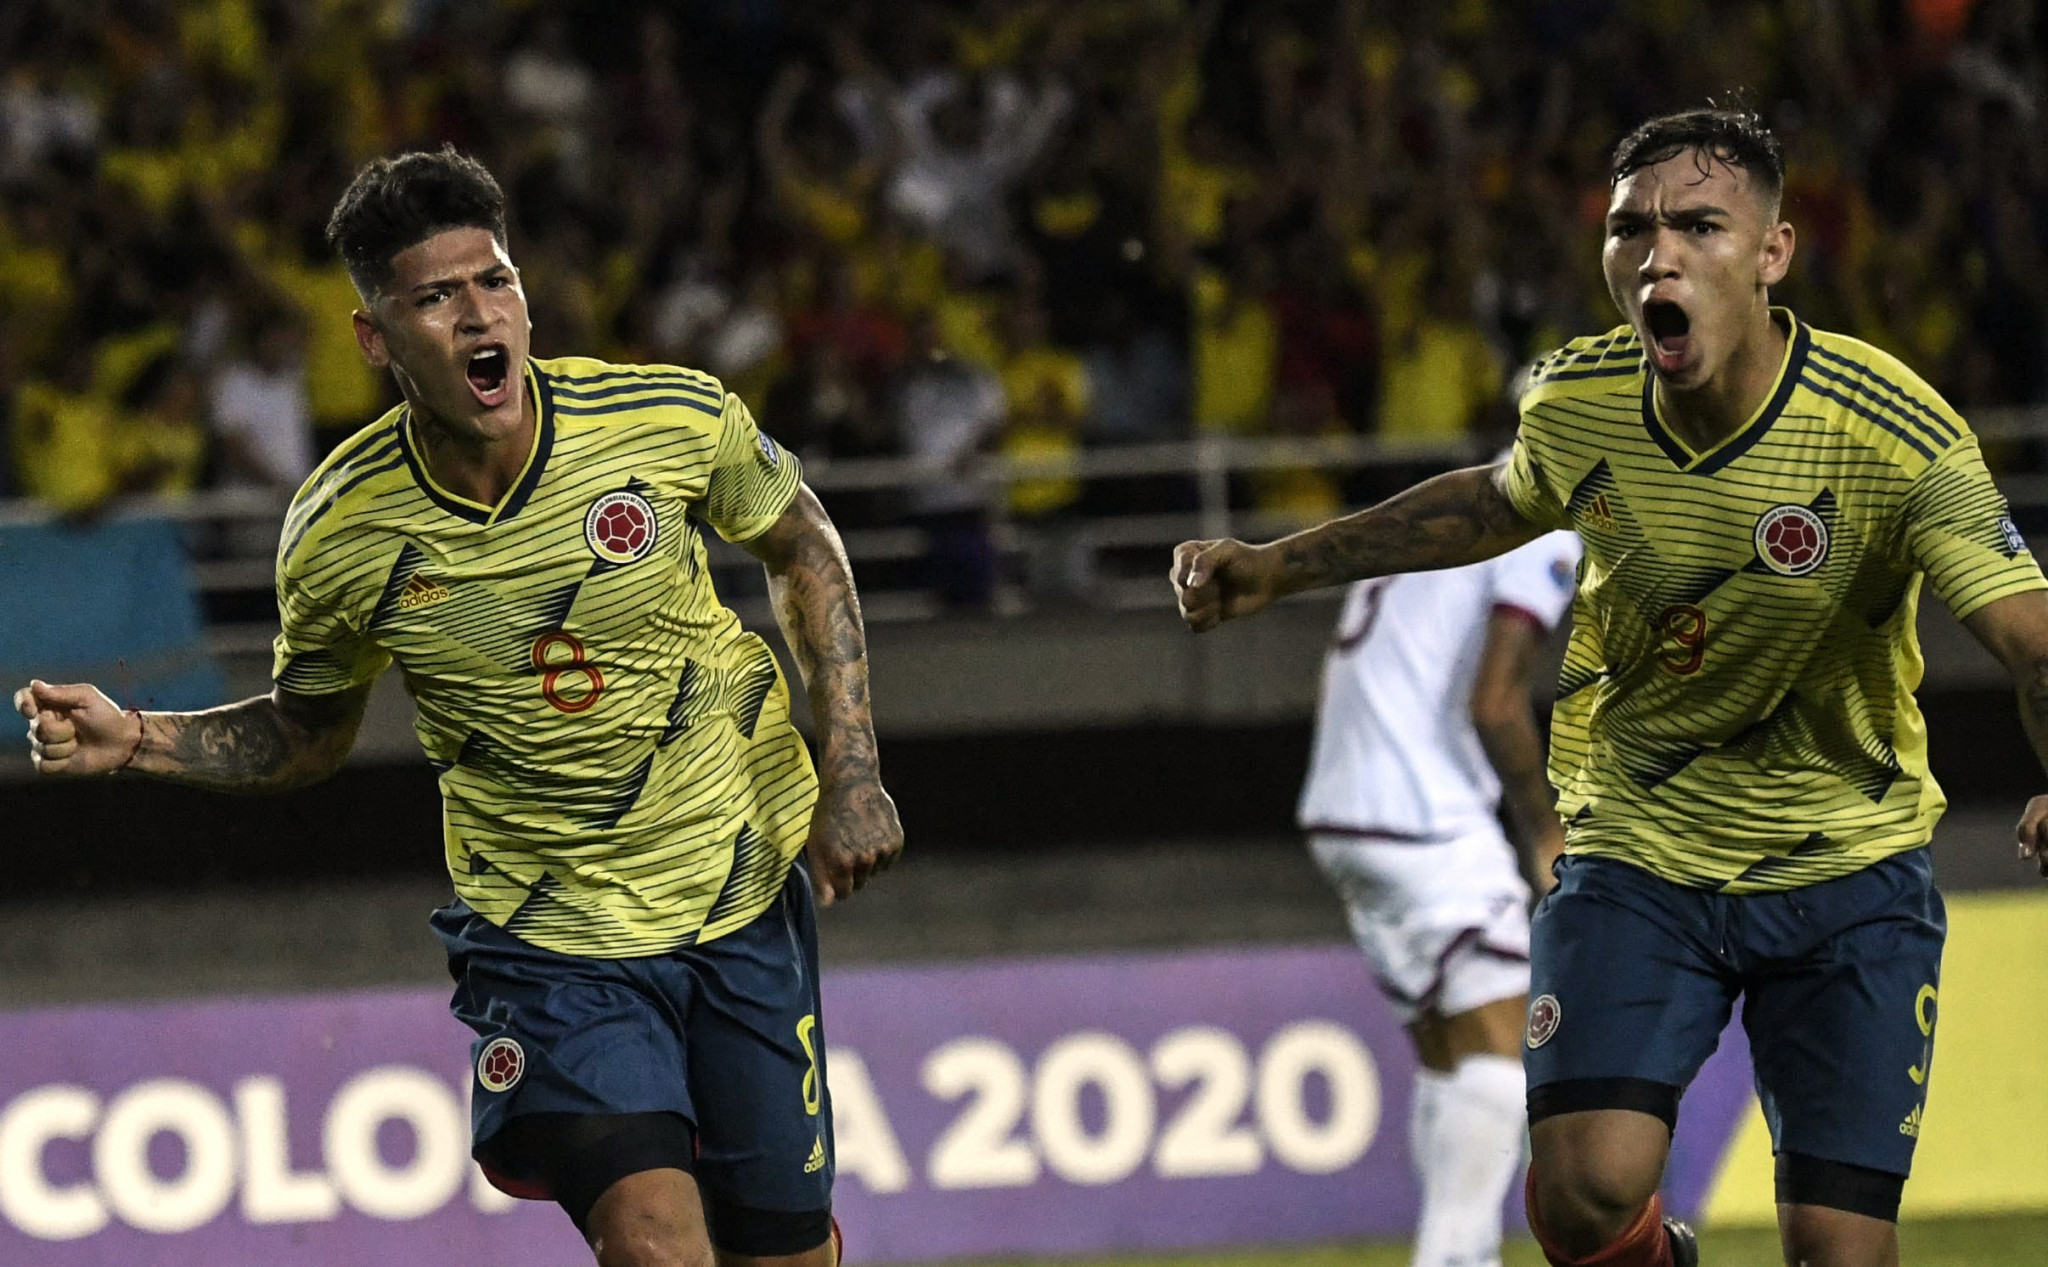 Hosts Colombia came from behind to secure an important win over Venezuela ©Getty Images